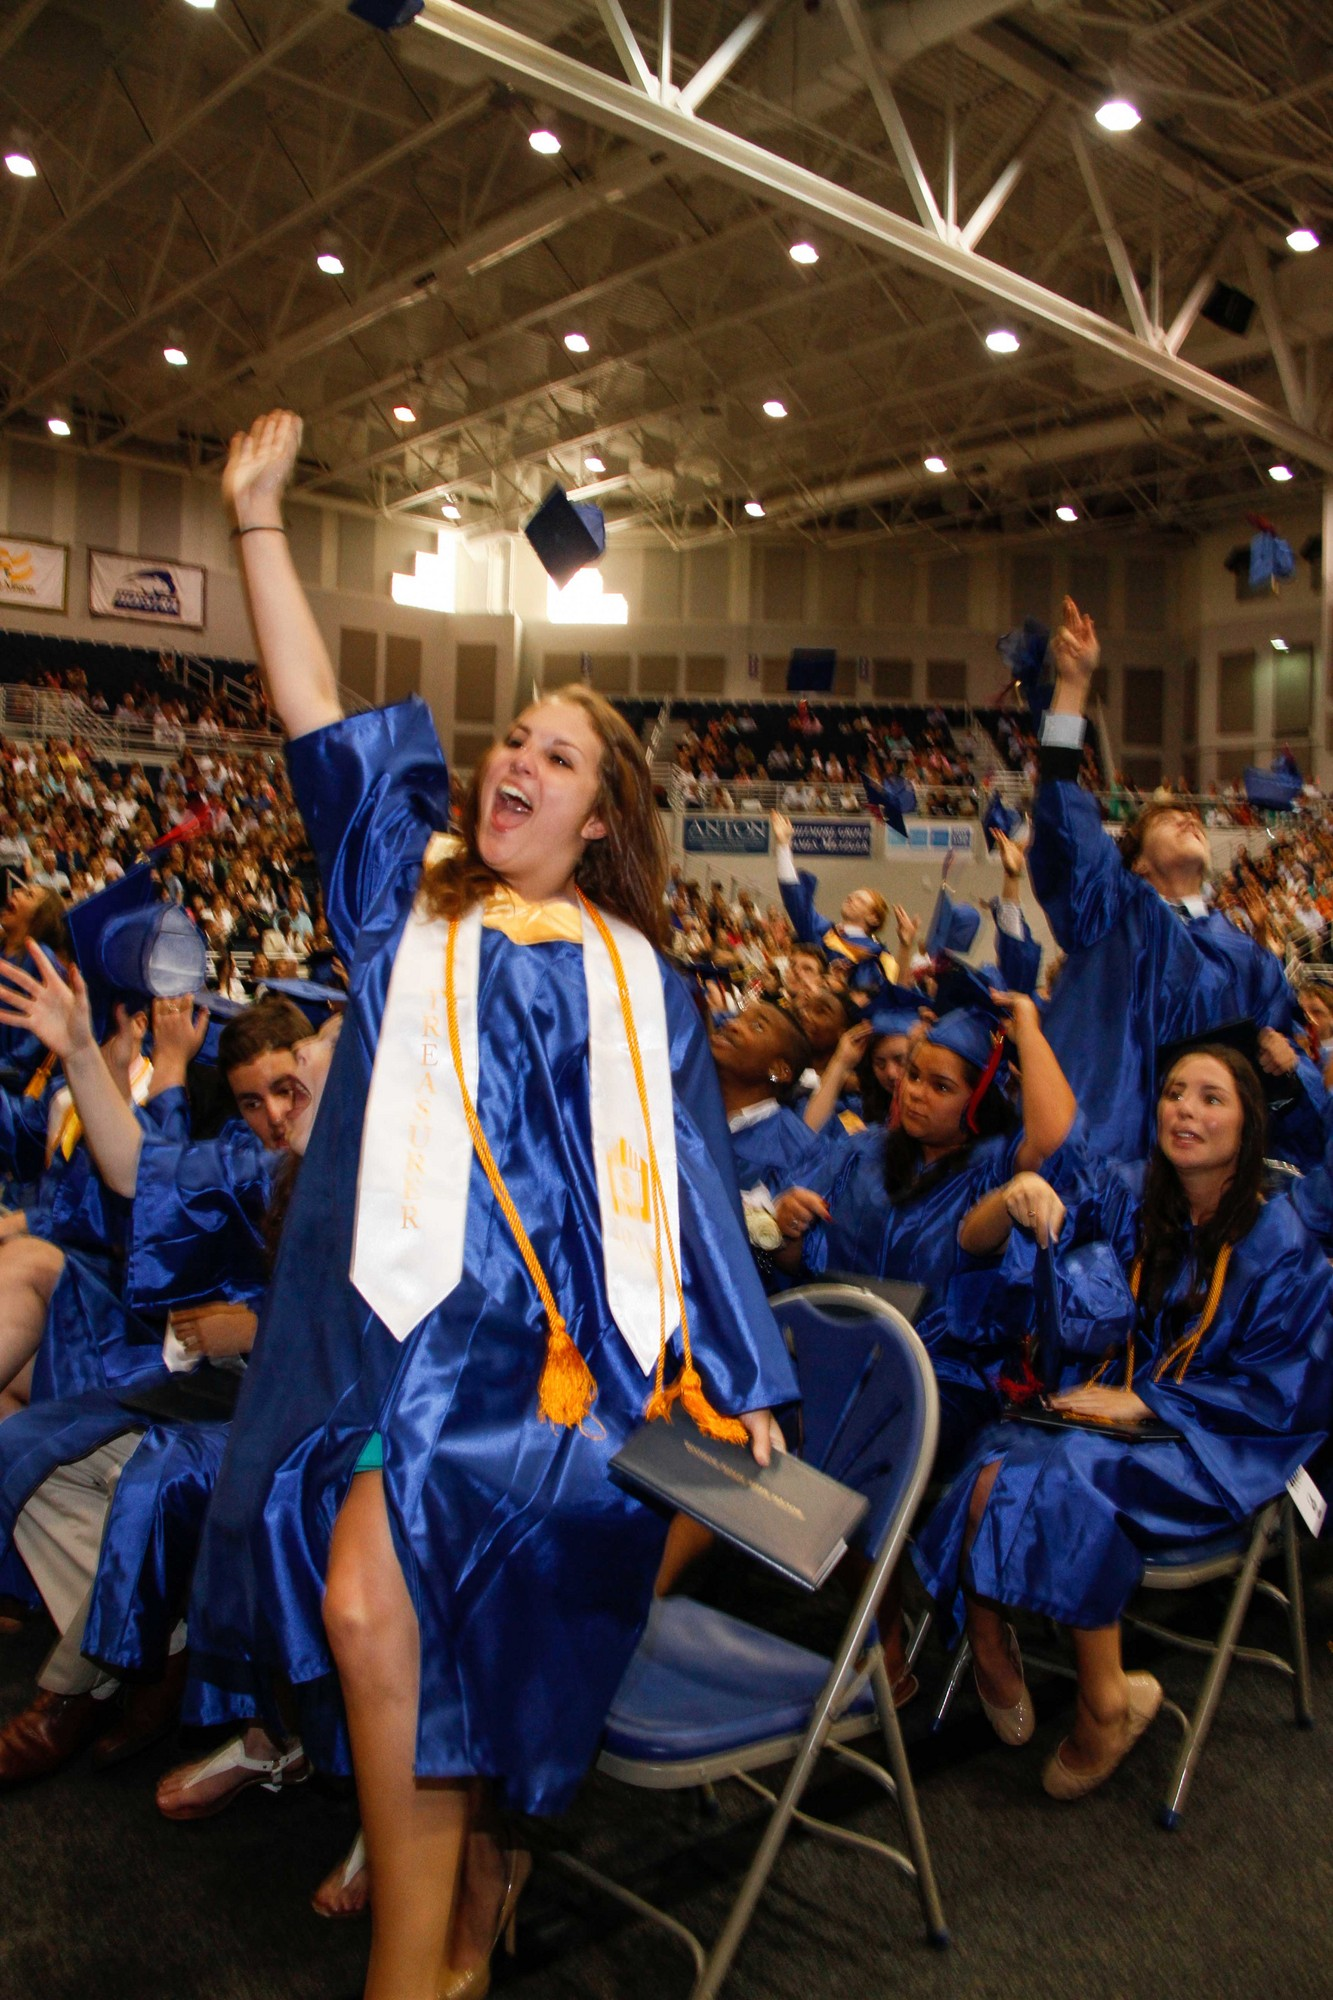 Jennifer Gentile jumped for joy as the class graduated.